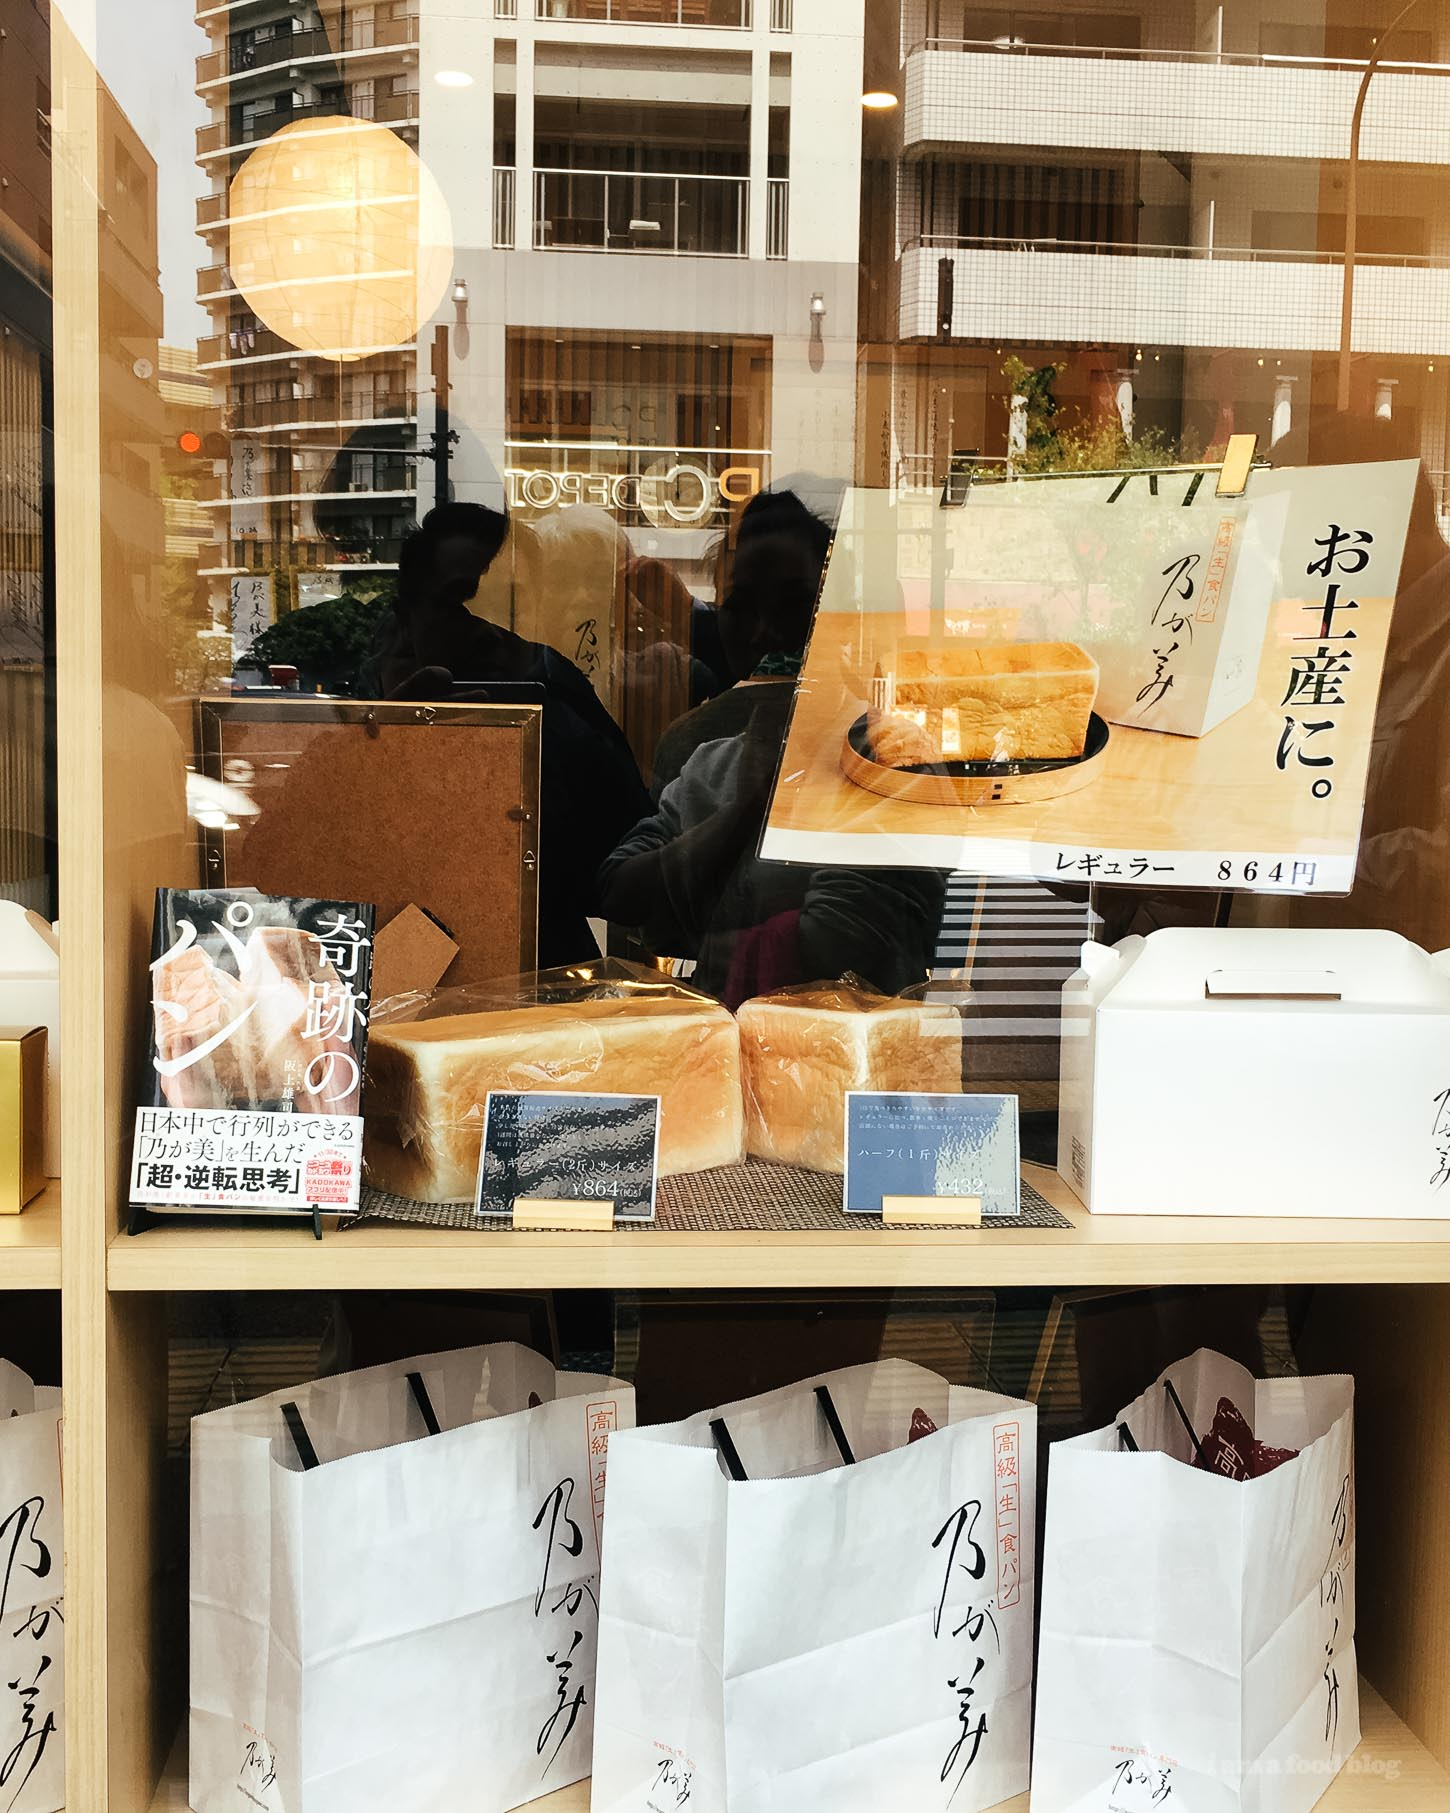 Japan's Famous Nogami Shokupan Bread: People are Lining Up for Hours for this Fluffy White Bread   www.iamafoodblog.com